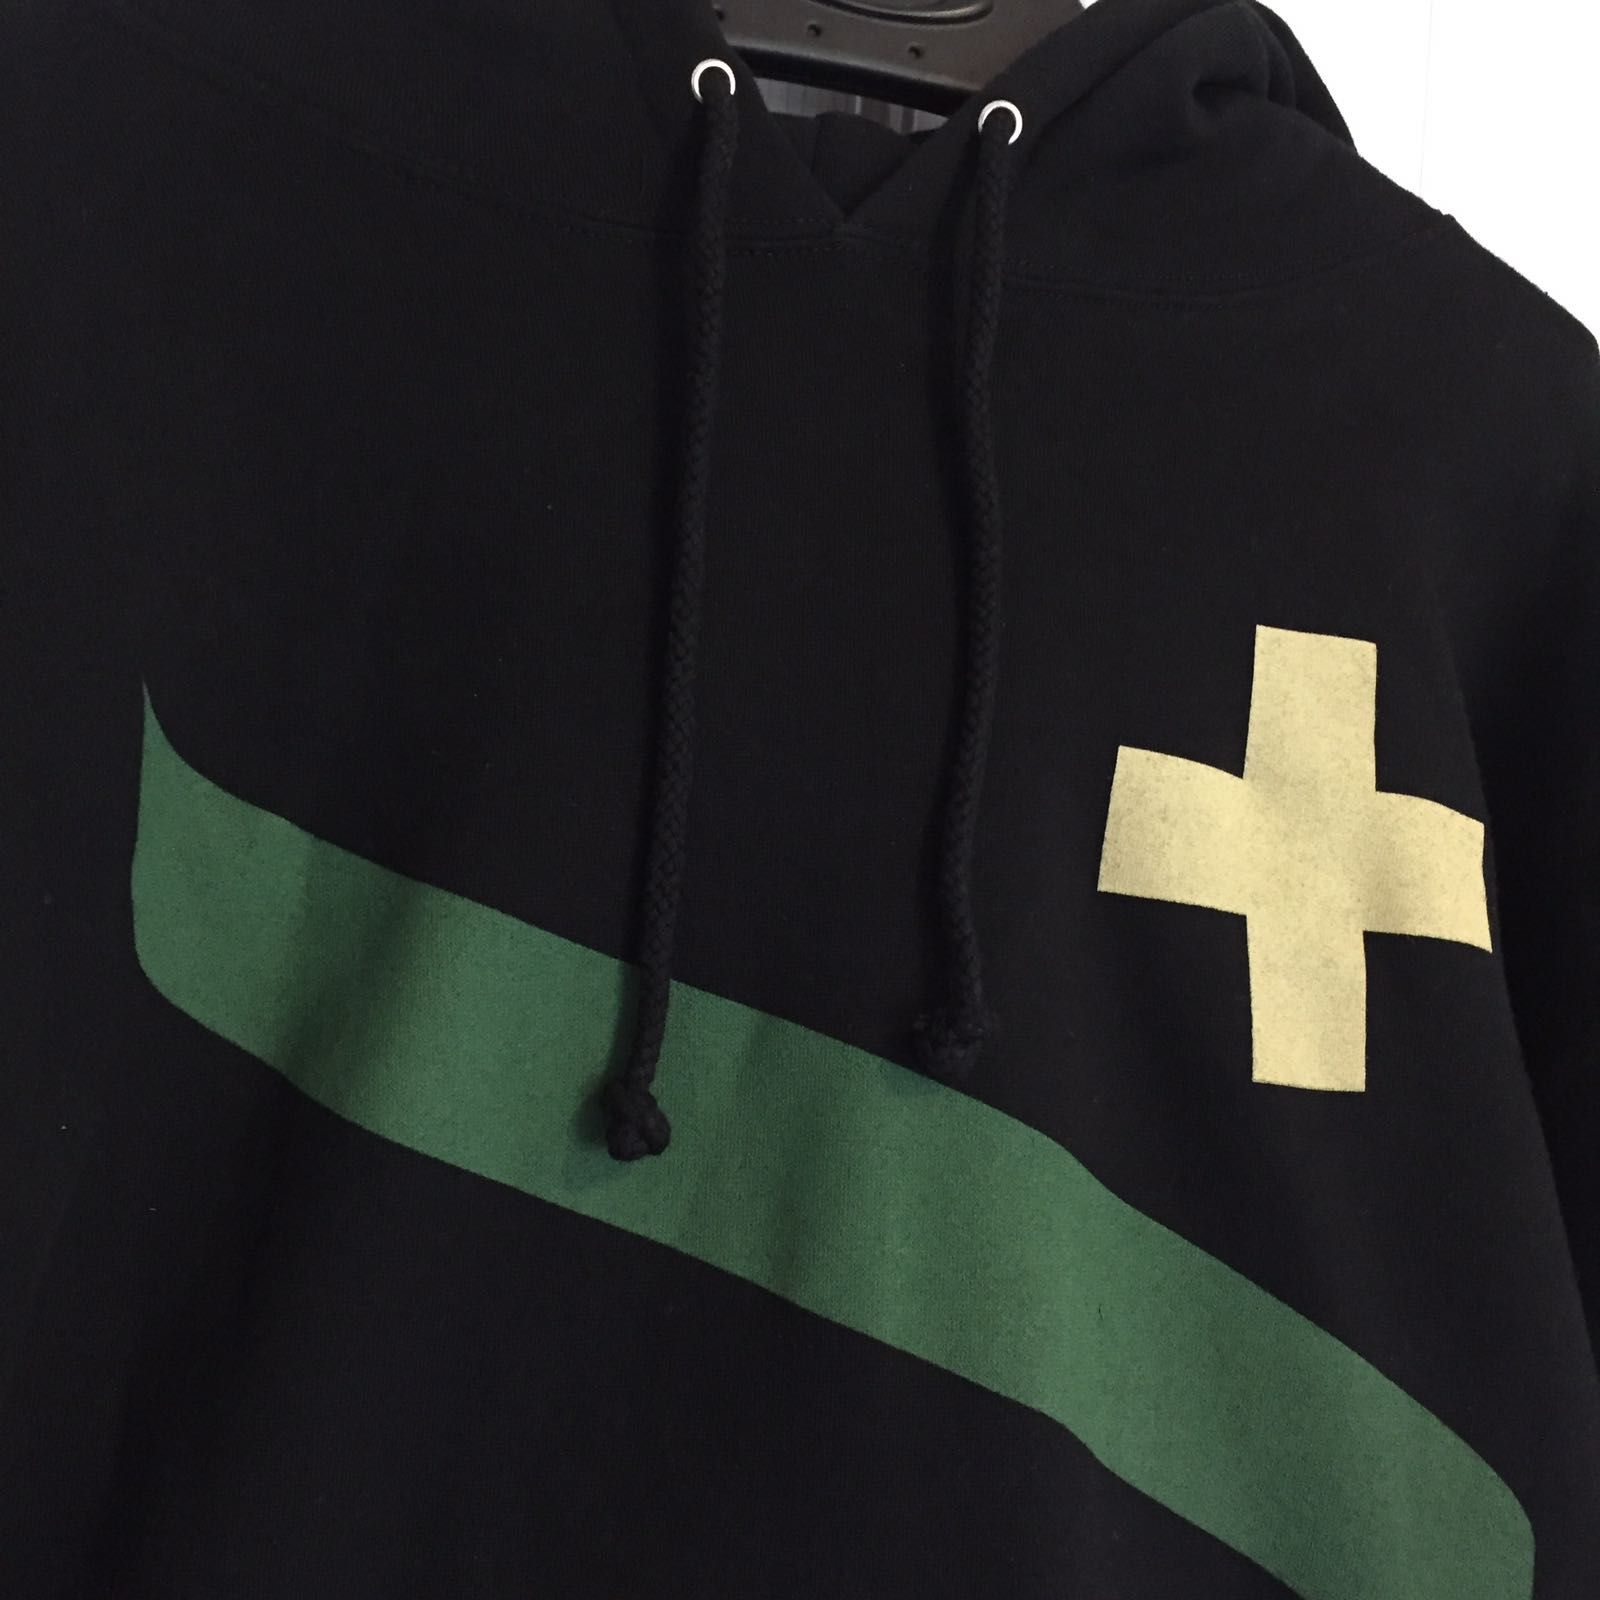 oakley common thread hoodie - ff8d4e1f-1d07-4756-ac9b-b721fa27ad38.jpeg